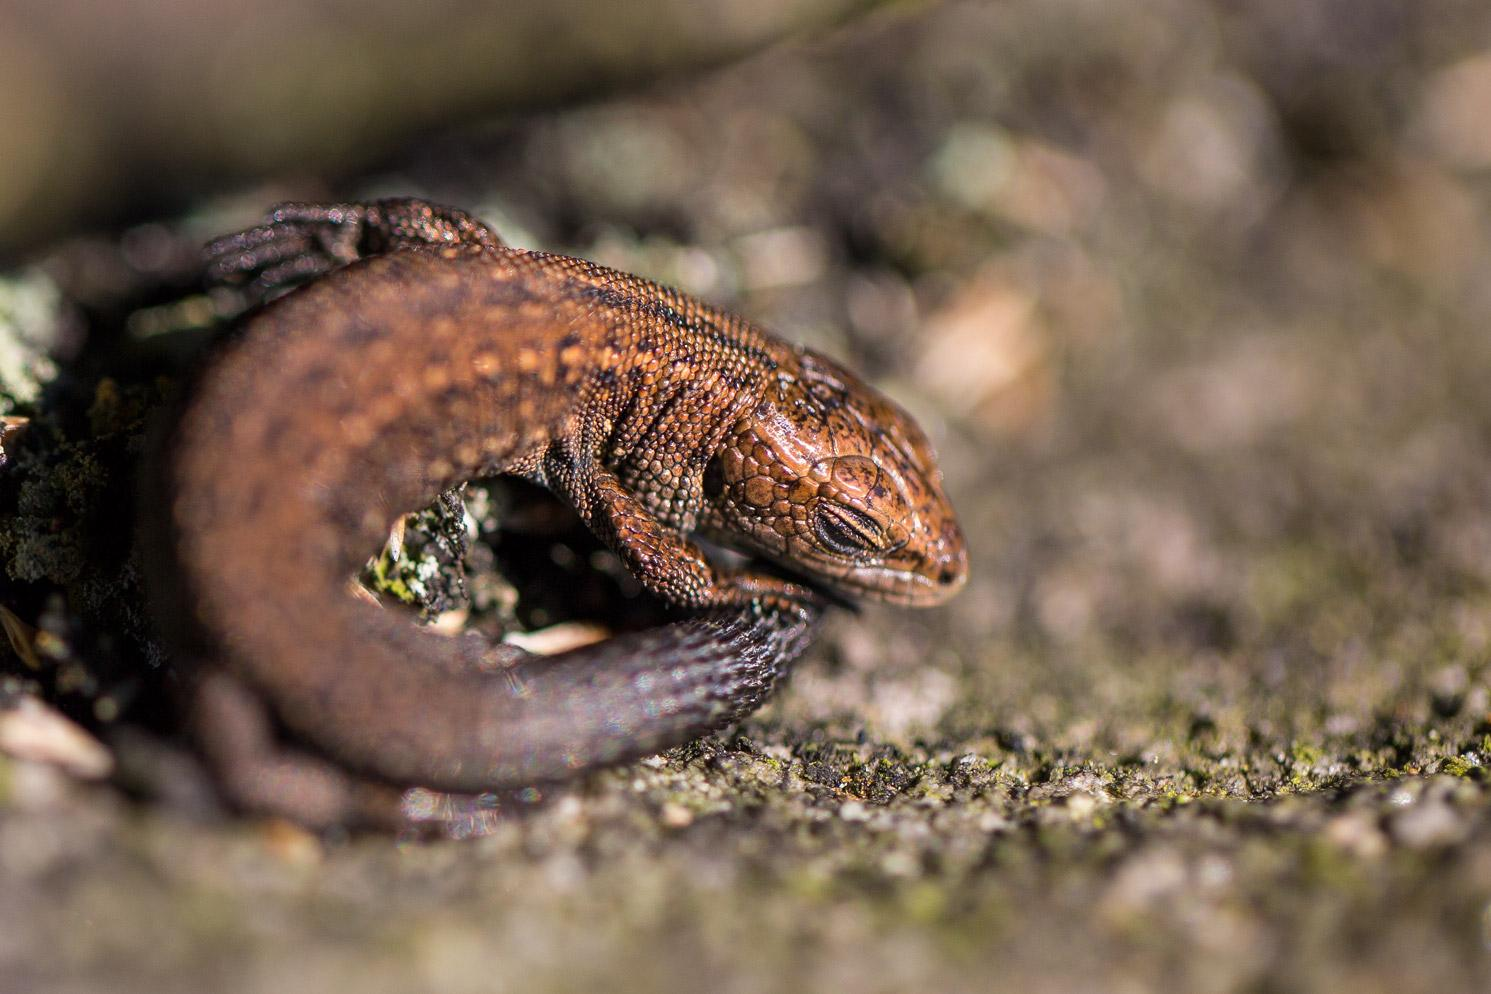 Common Lizard youngster napping in the @peakdistrict @reptiles @amphibiansorg #cute http://t.co/ldg4RuJnnm